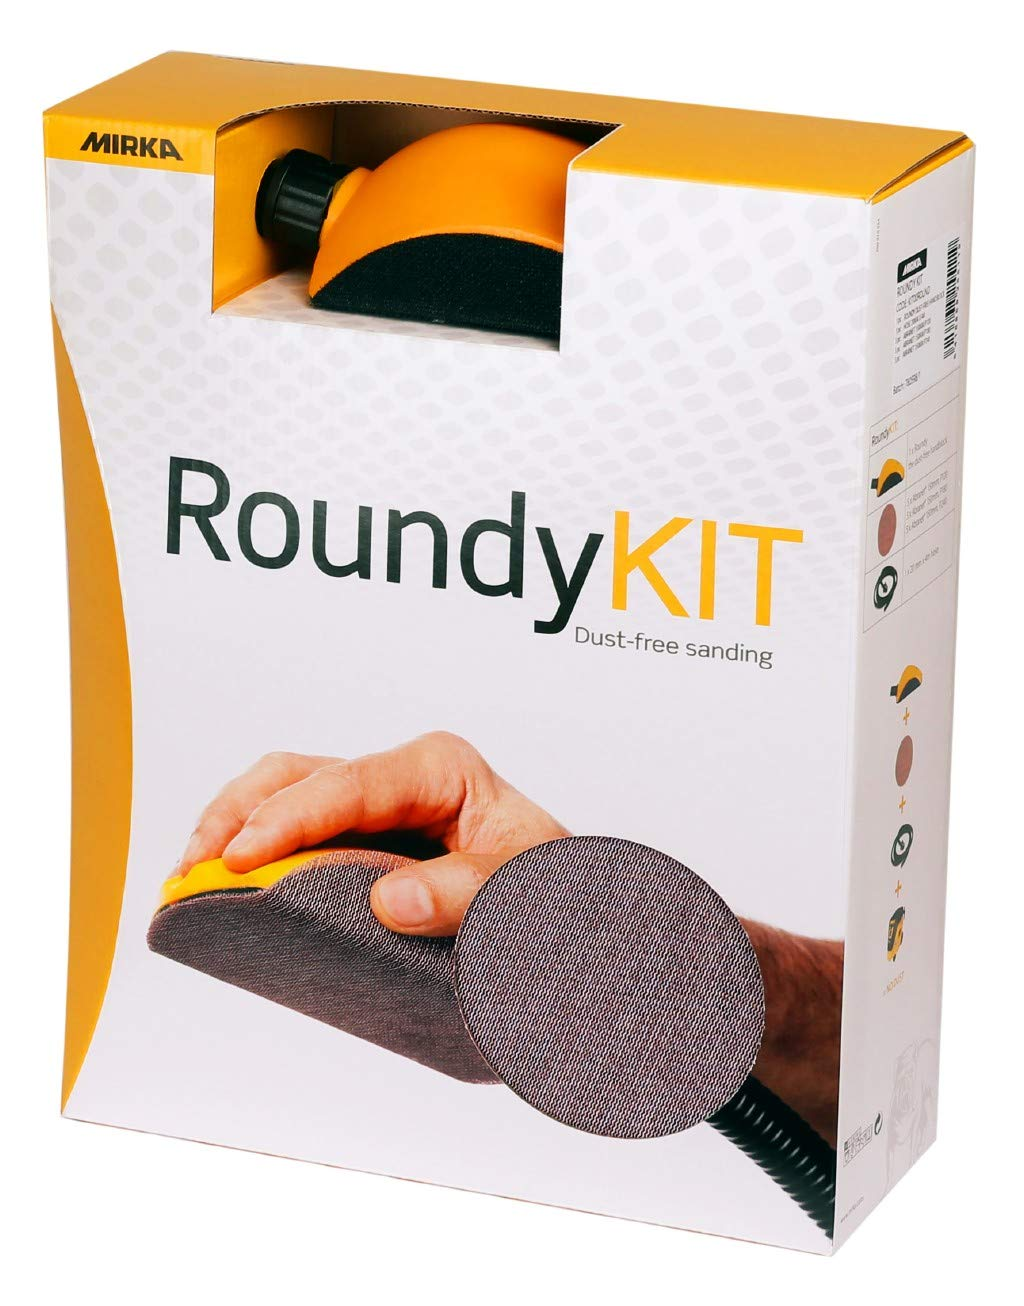 Mirka ROUNDY Hand Sanding Block Kit with Hose & 150mm Abranet Discs (KIT00ROUND)